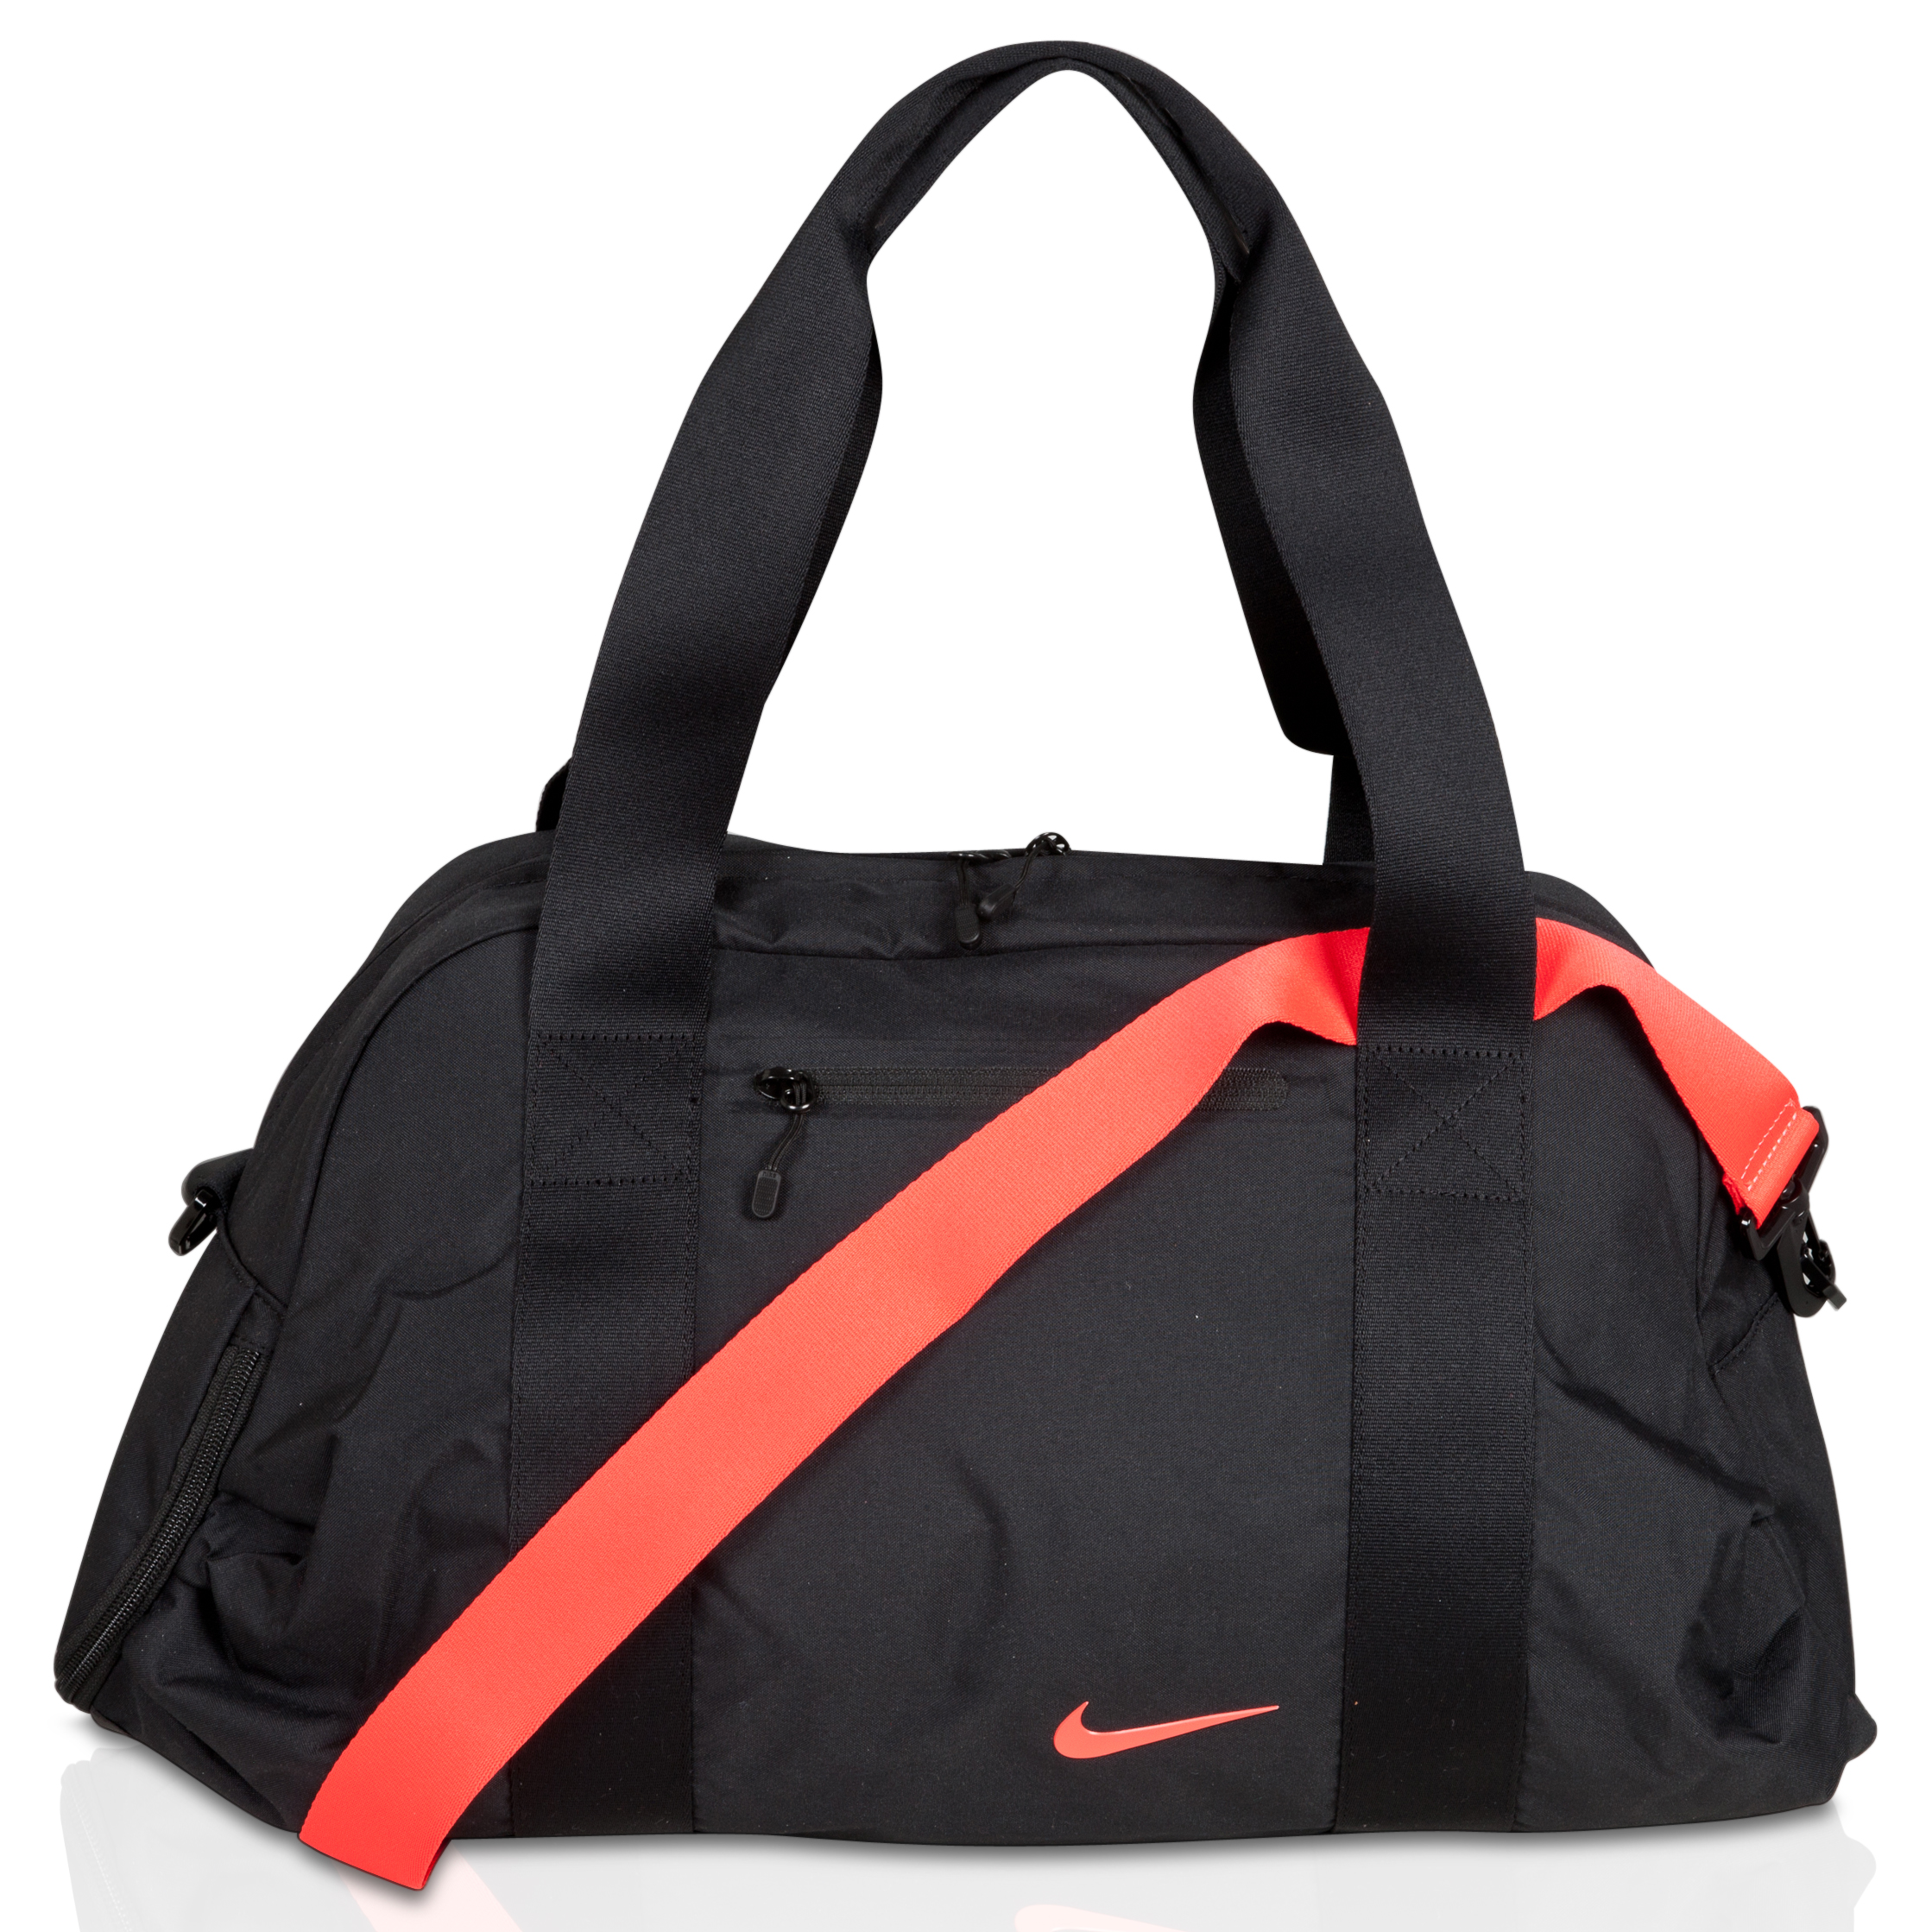 Nike C72 Legend Medium Bag - Black/Black/(Bright Crimson) - Womens